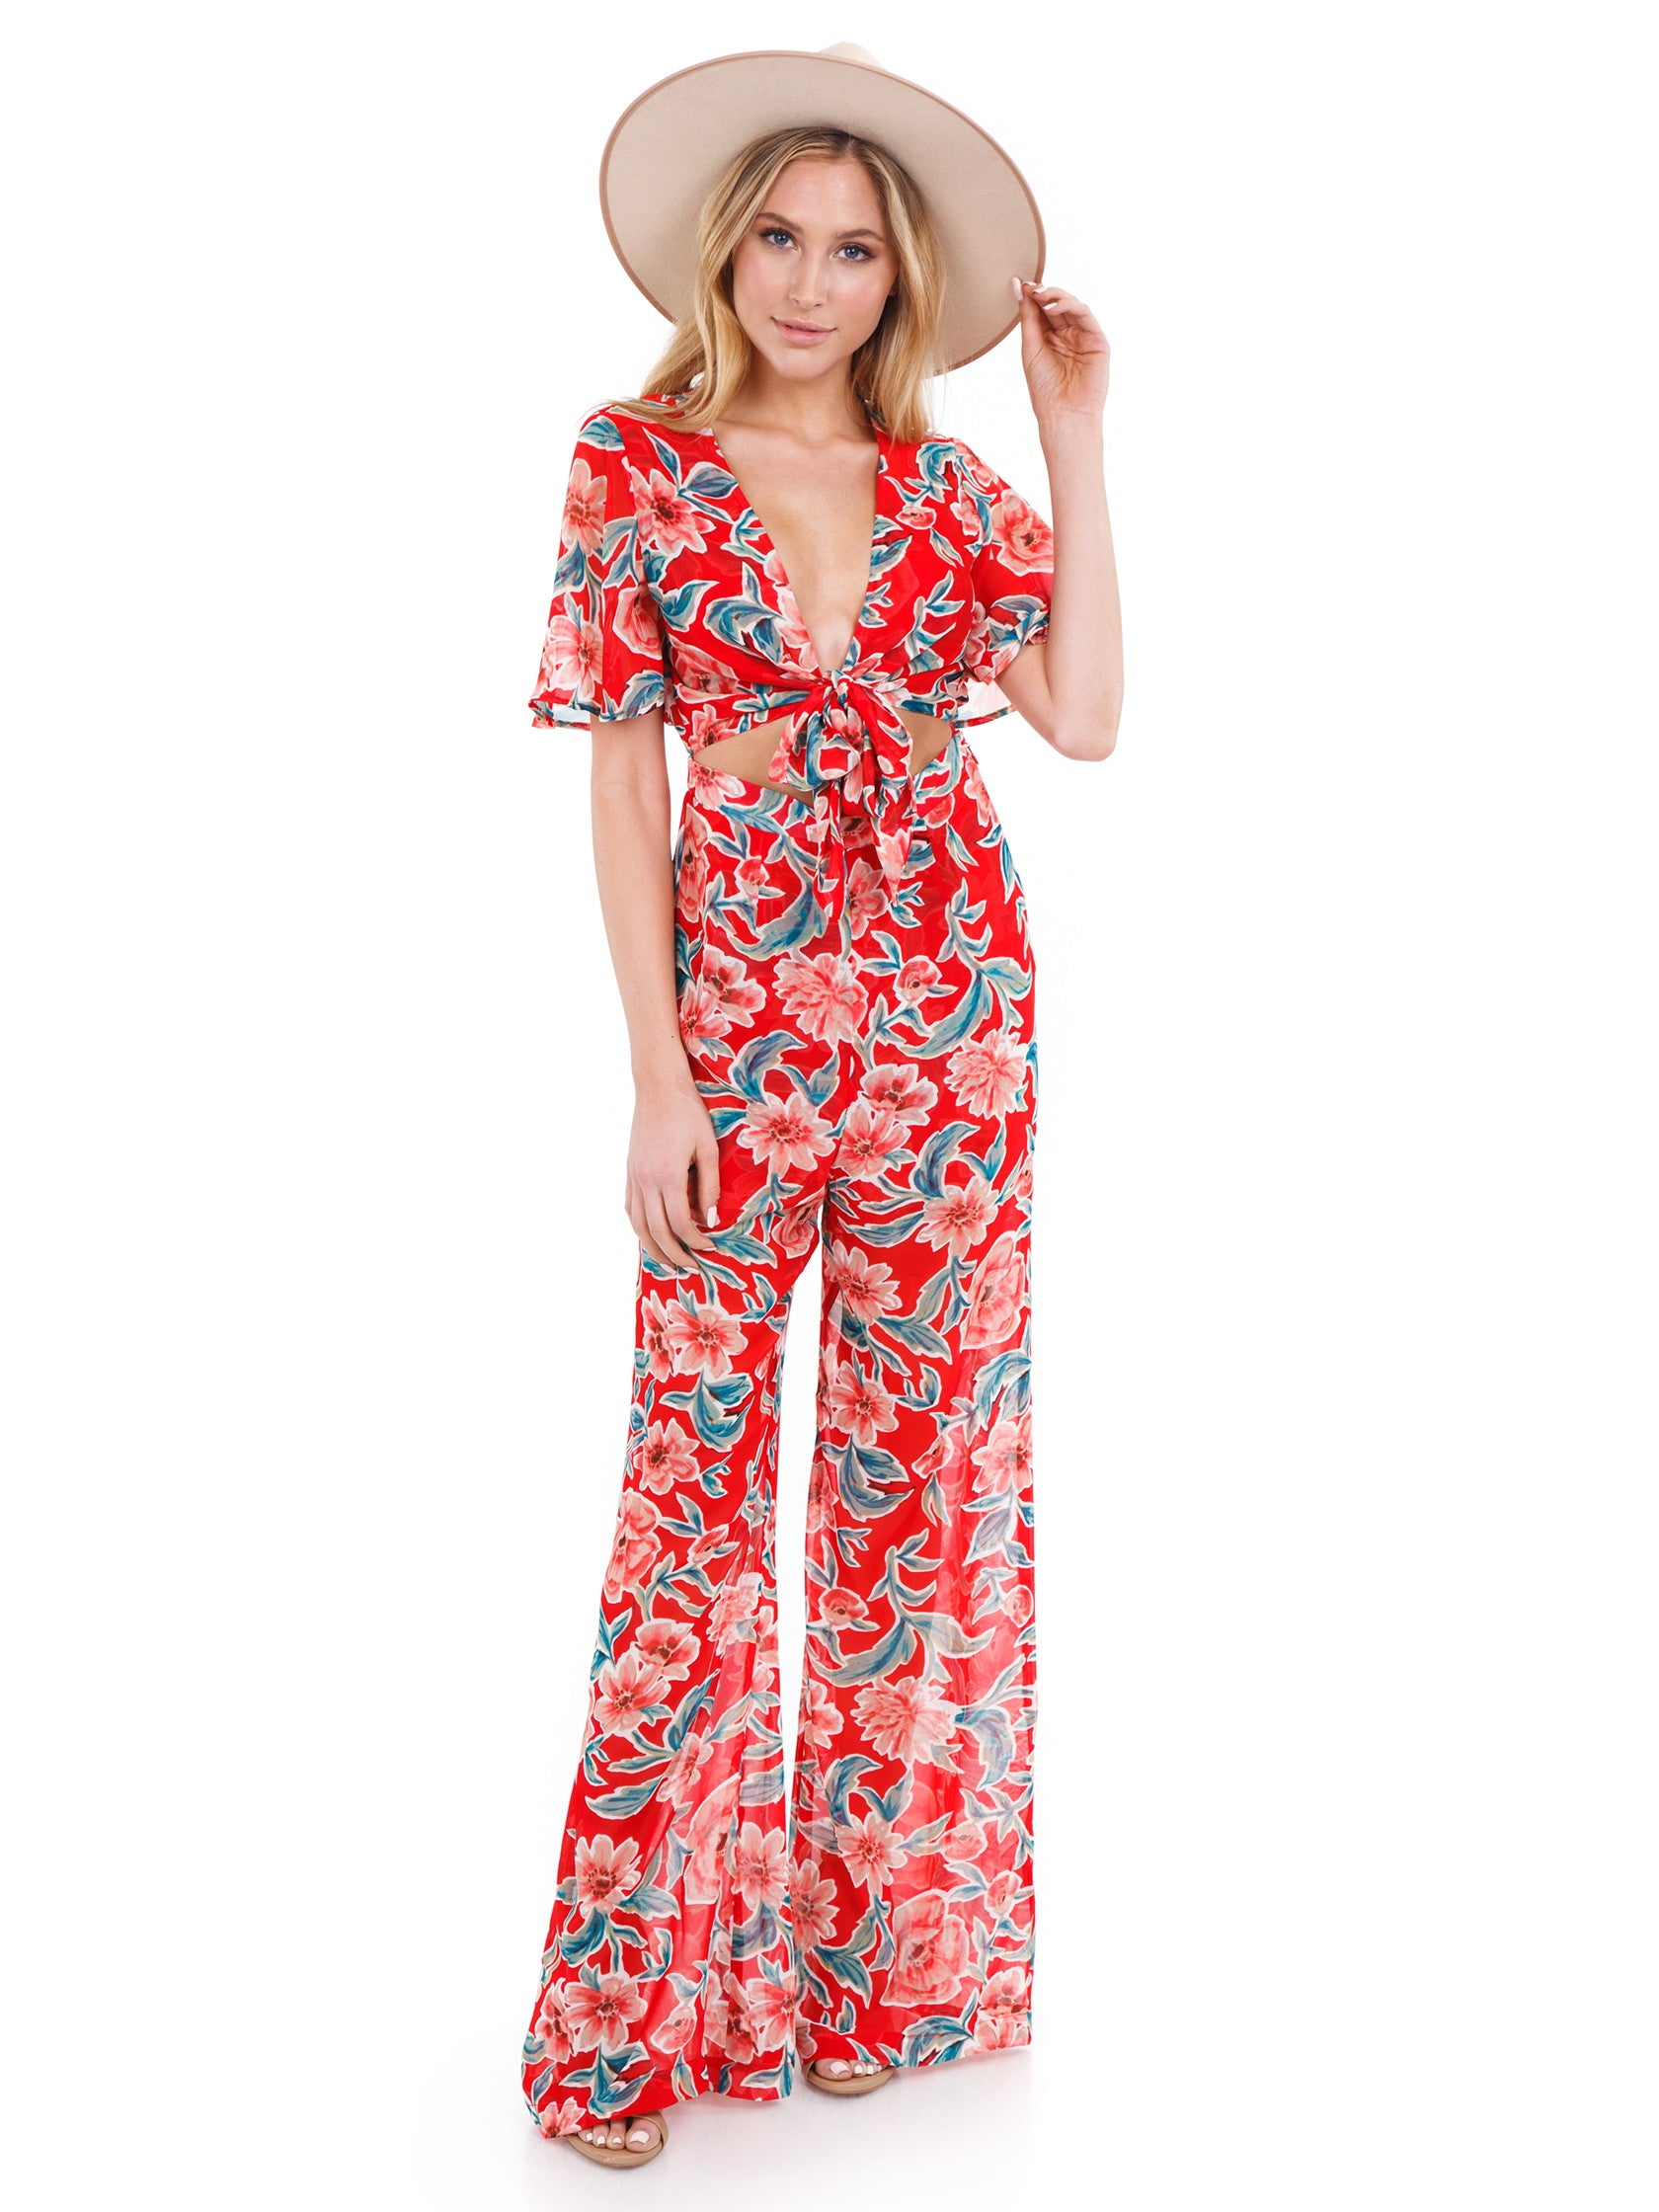 Girl outfit in a jumpsuit rental from Show Me Your Mumu called Jenna Jumpsuit